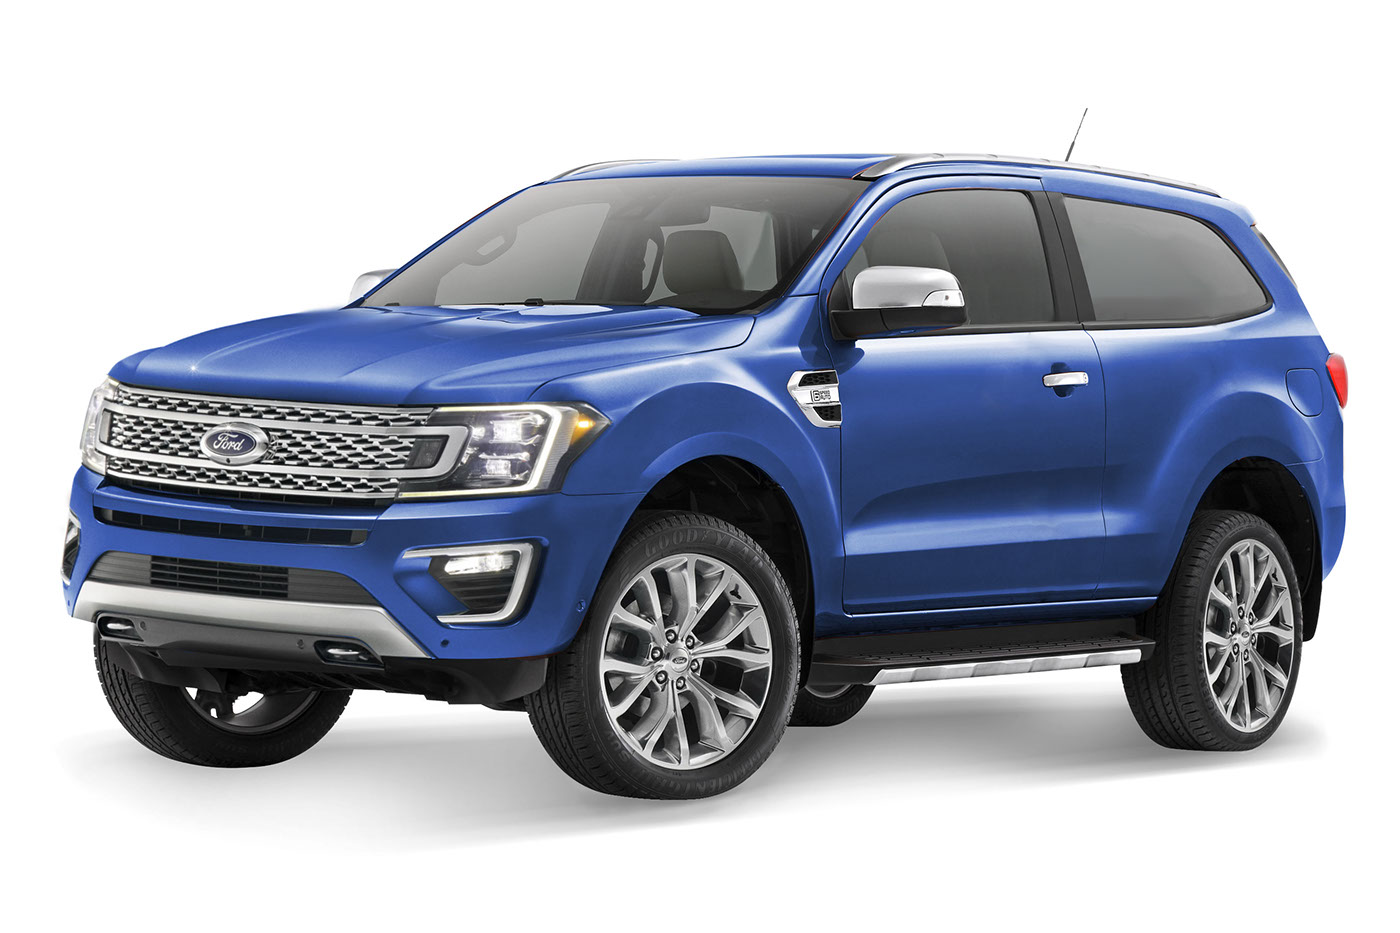 RENDERED SPECULATION: IF The All-new Ford Bronco Looks ...